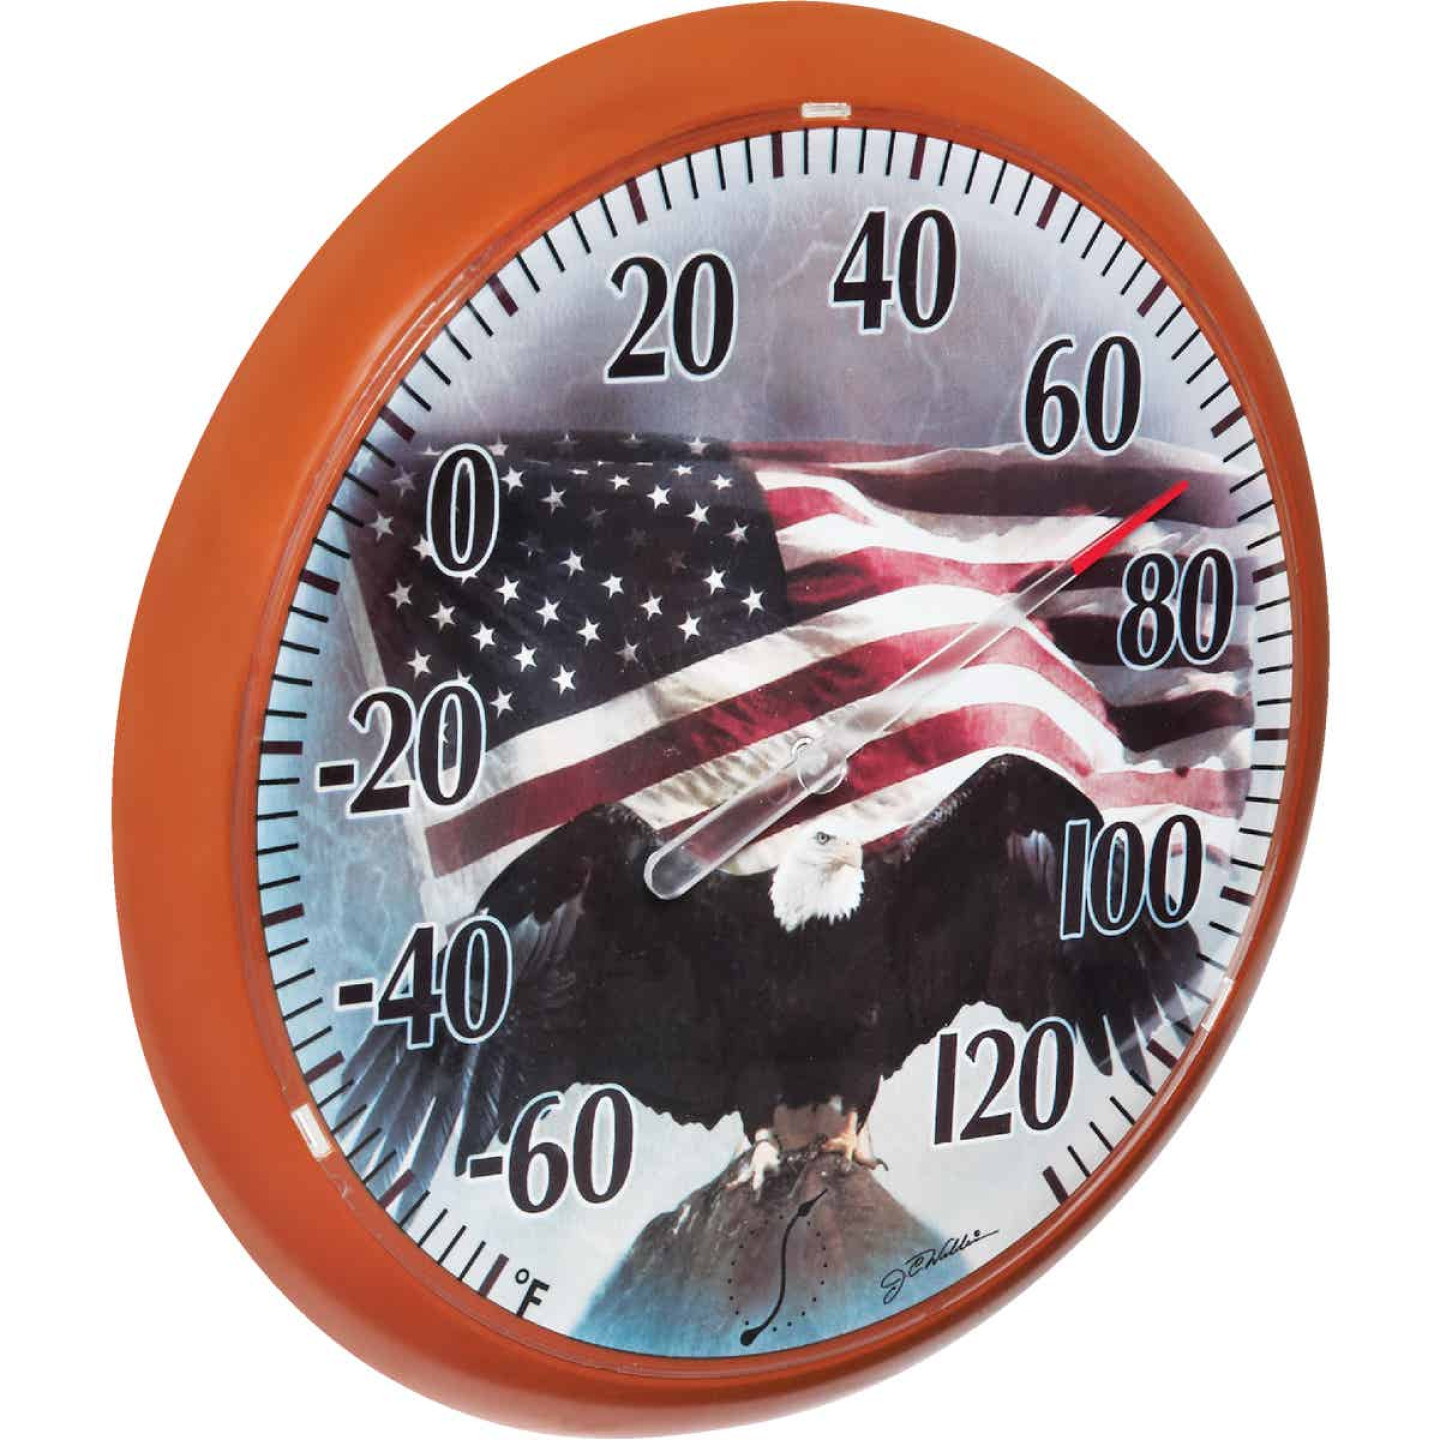 "Taylor SpringField 13-1/4"" Dia Plastic Dial Flag Indoor & Outdoor Thermometer Image 4"